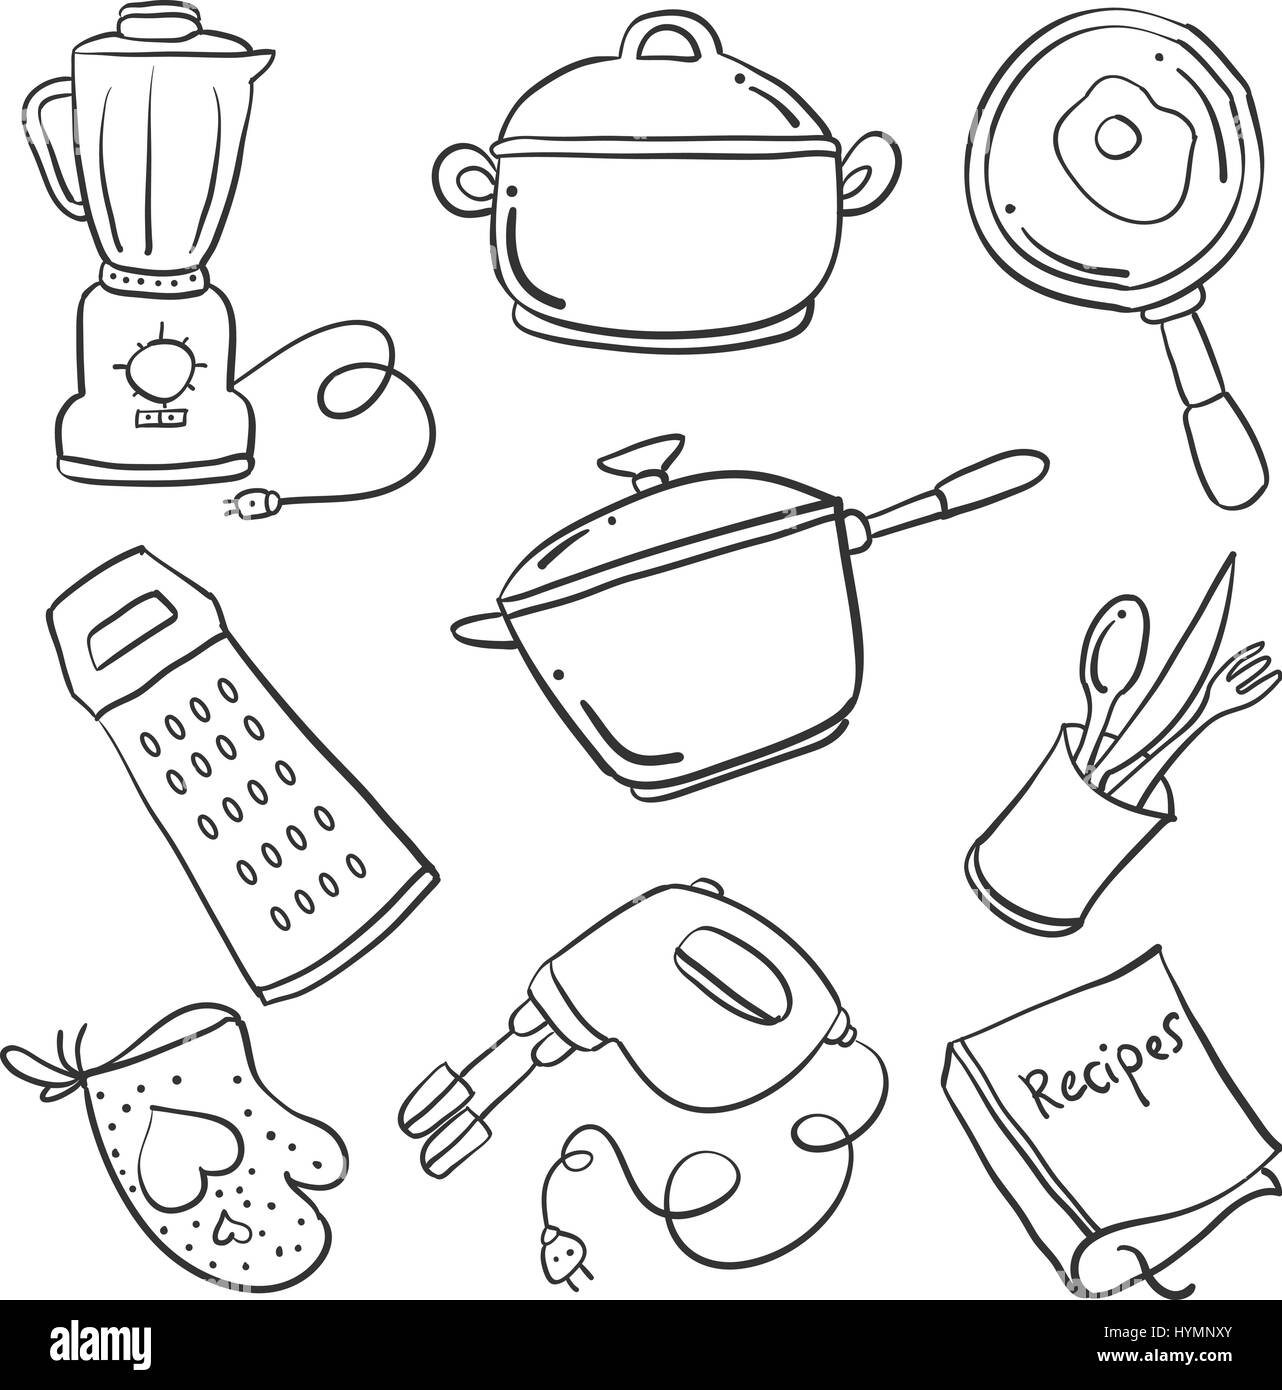 Doodle of kitchen set collection